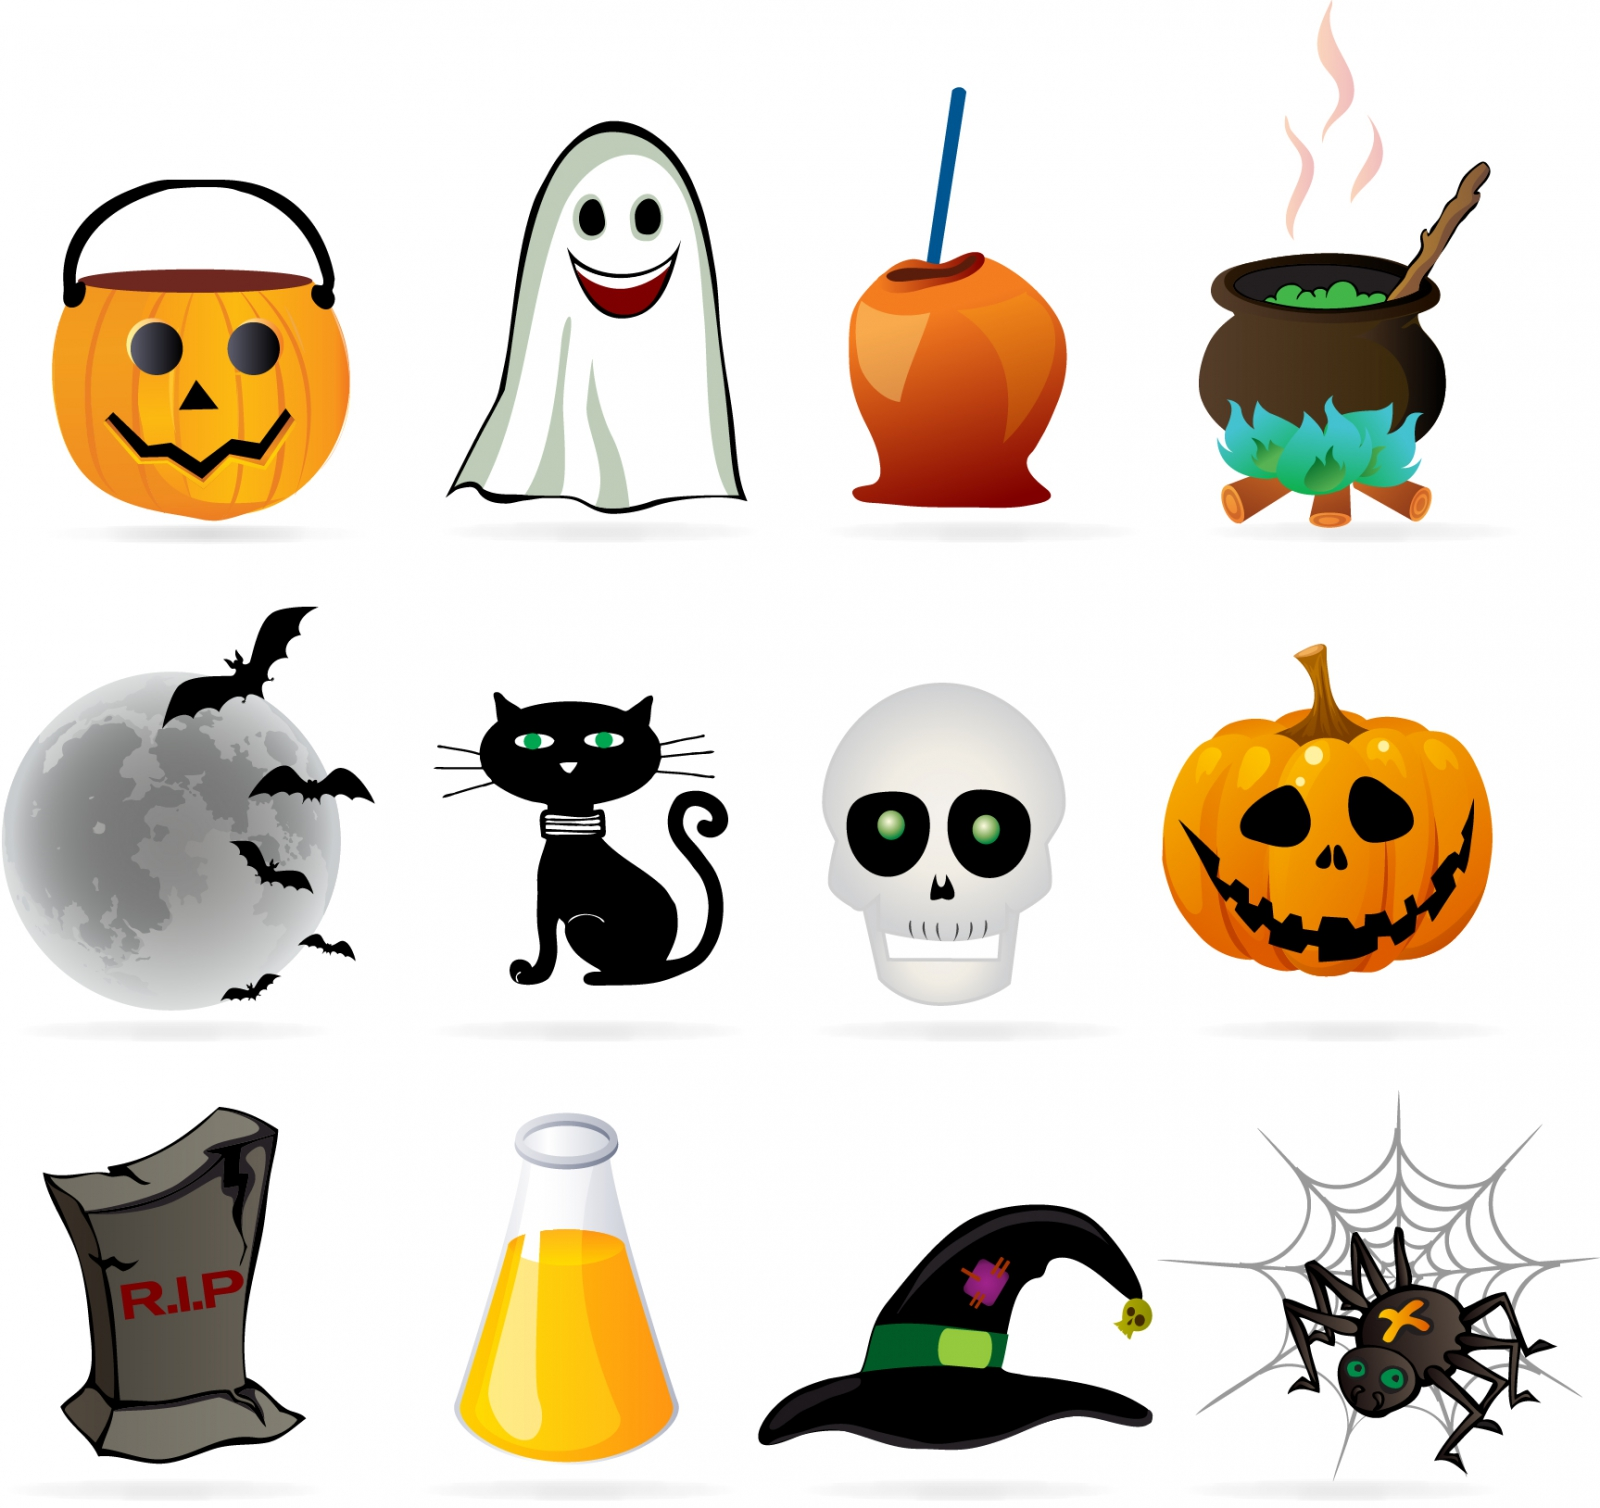 20 free halloween vector graphics to create scary and